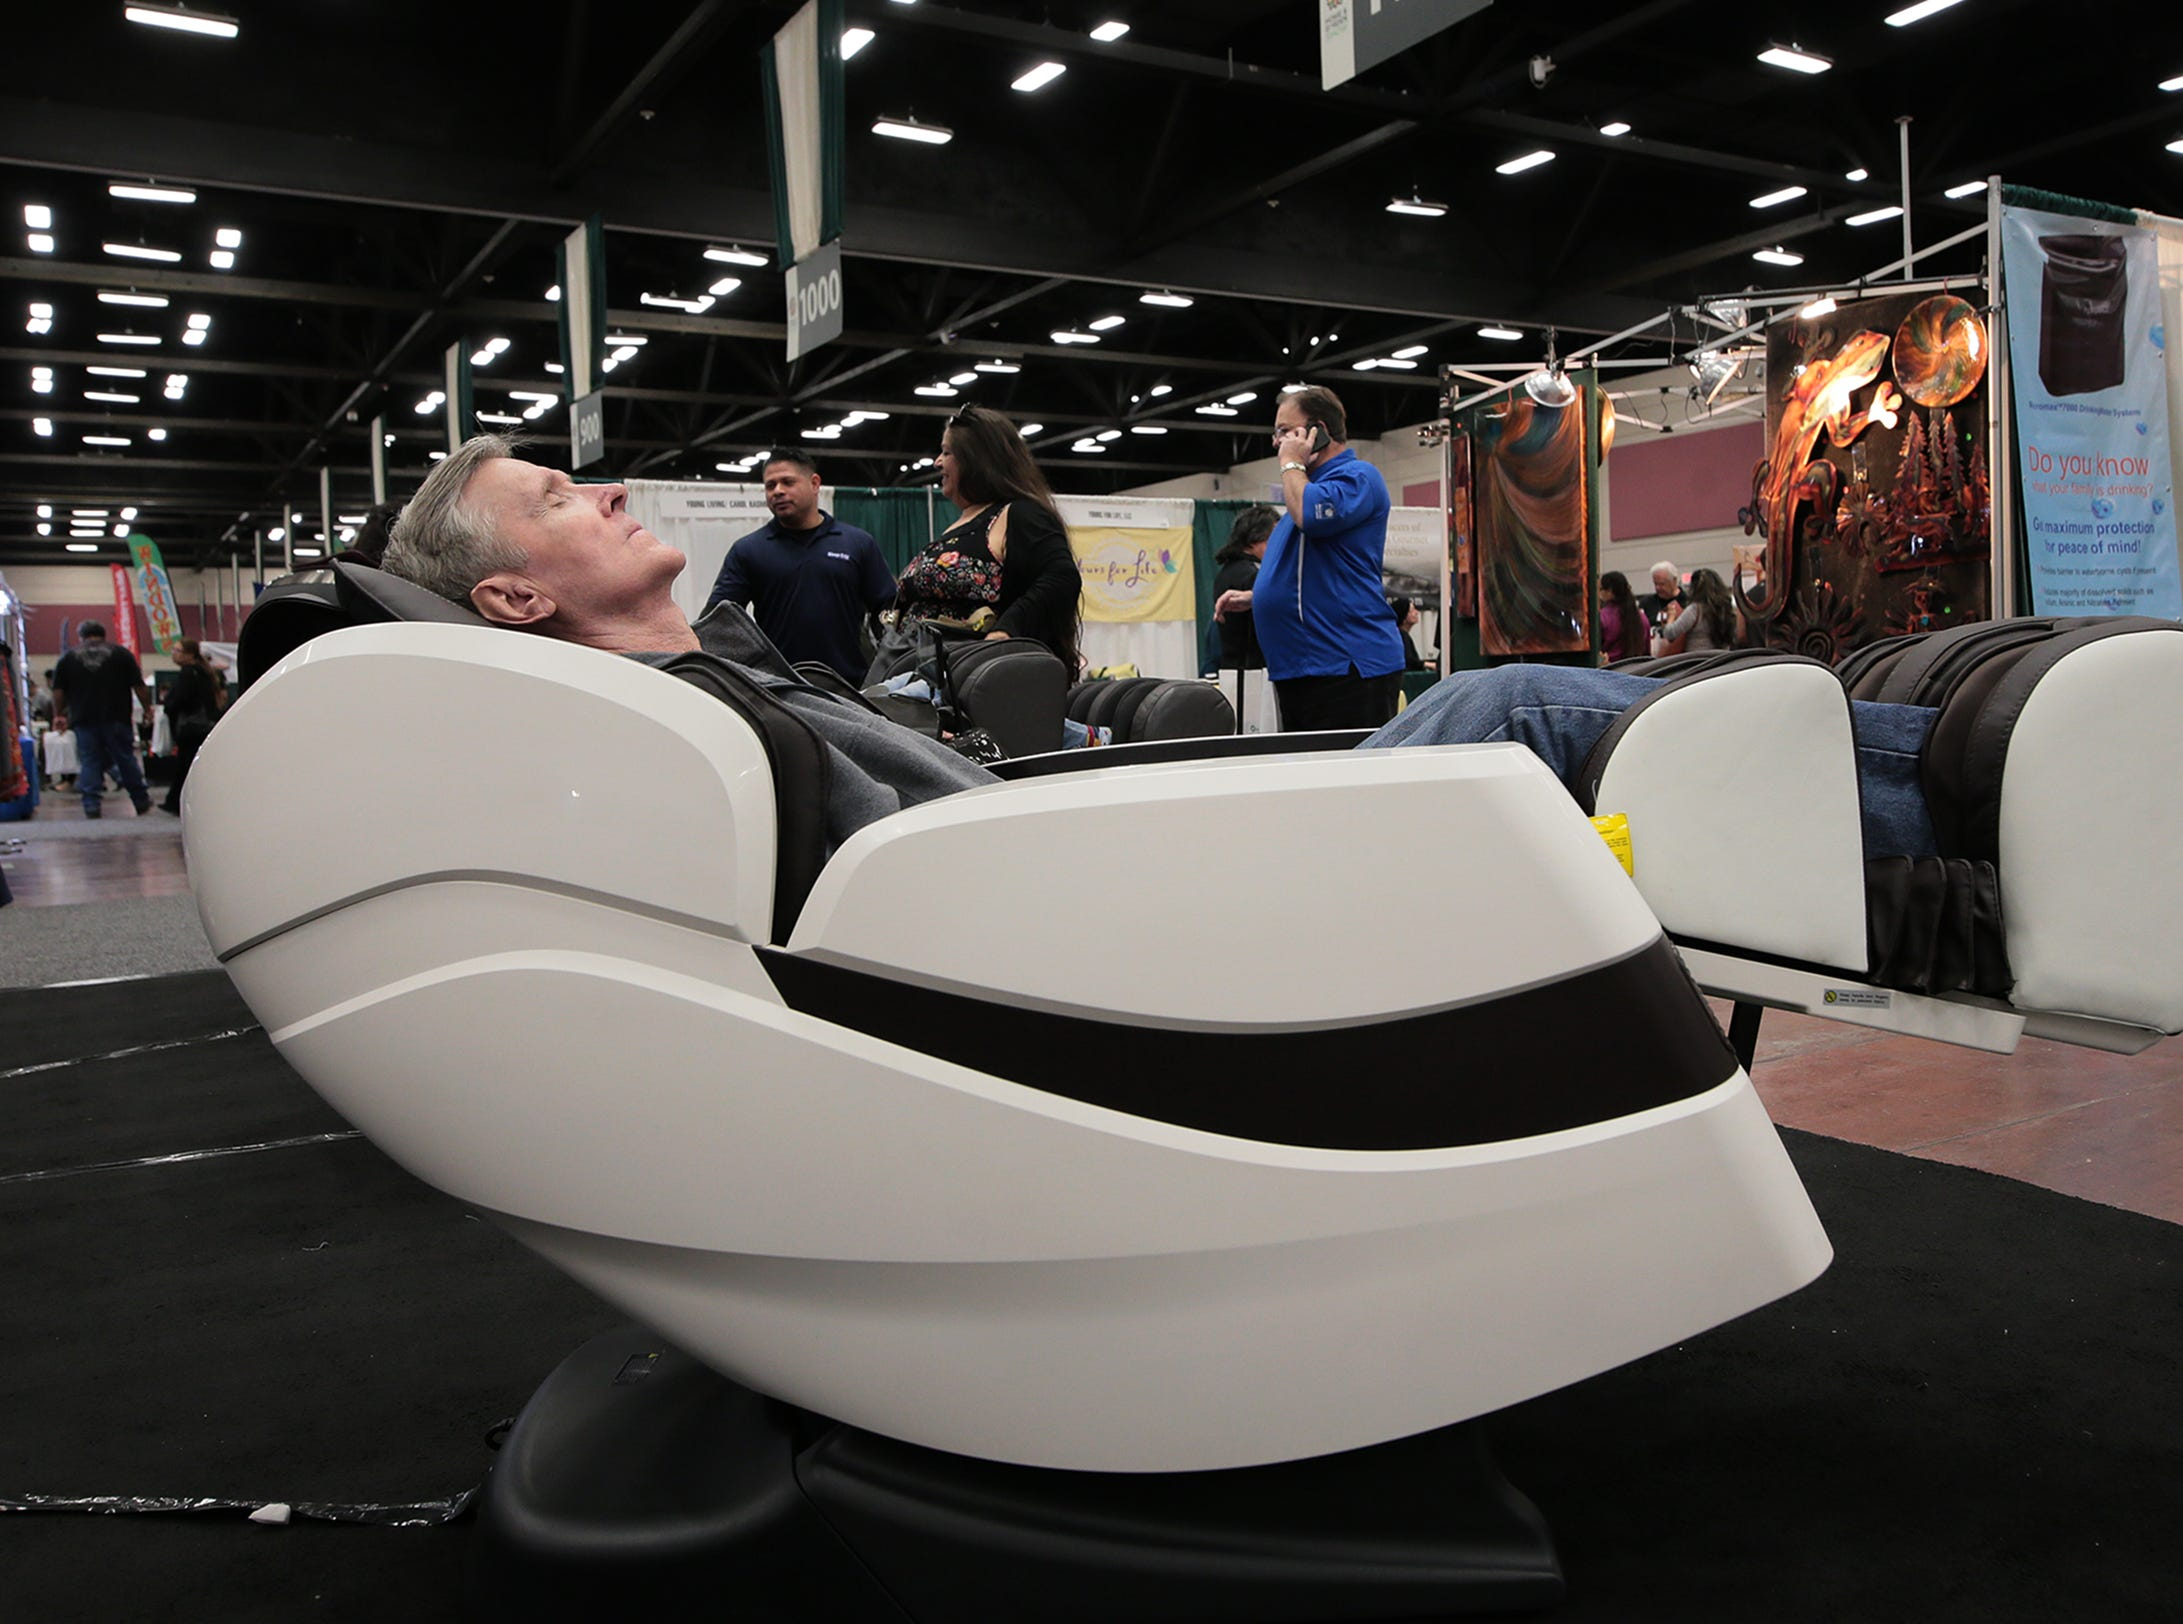 A man relaxes in a high-tech recliner at the 19th Annual El Paso Home and Garden Show, which was in full swing Saturday, March 9, 2019, at the convention center in Downtown. Find anything for your home from art to air conditioning. The show continues Sunday from 11 a.m. to 5 p.m. Tickets are $7 for people 17 and older; $6 for those 65 and older. Active military with ID and people 16 and younger get in free.